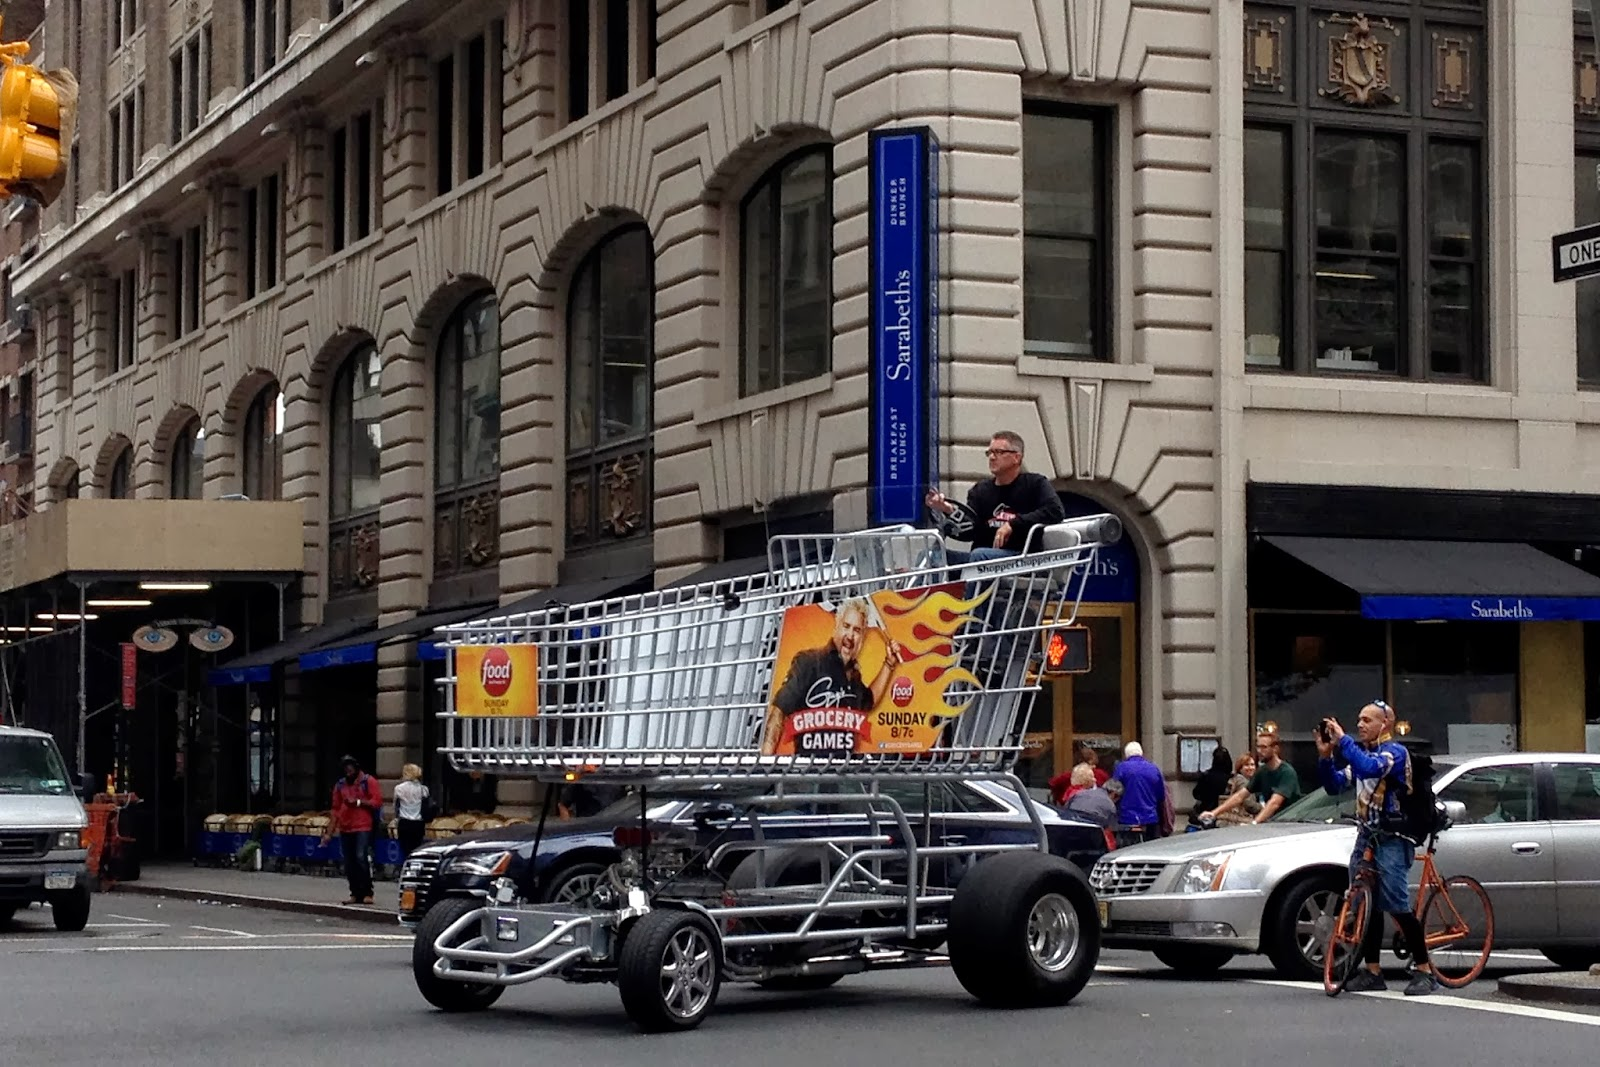 Food Network Diners Drive Ins And Dives Nyc